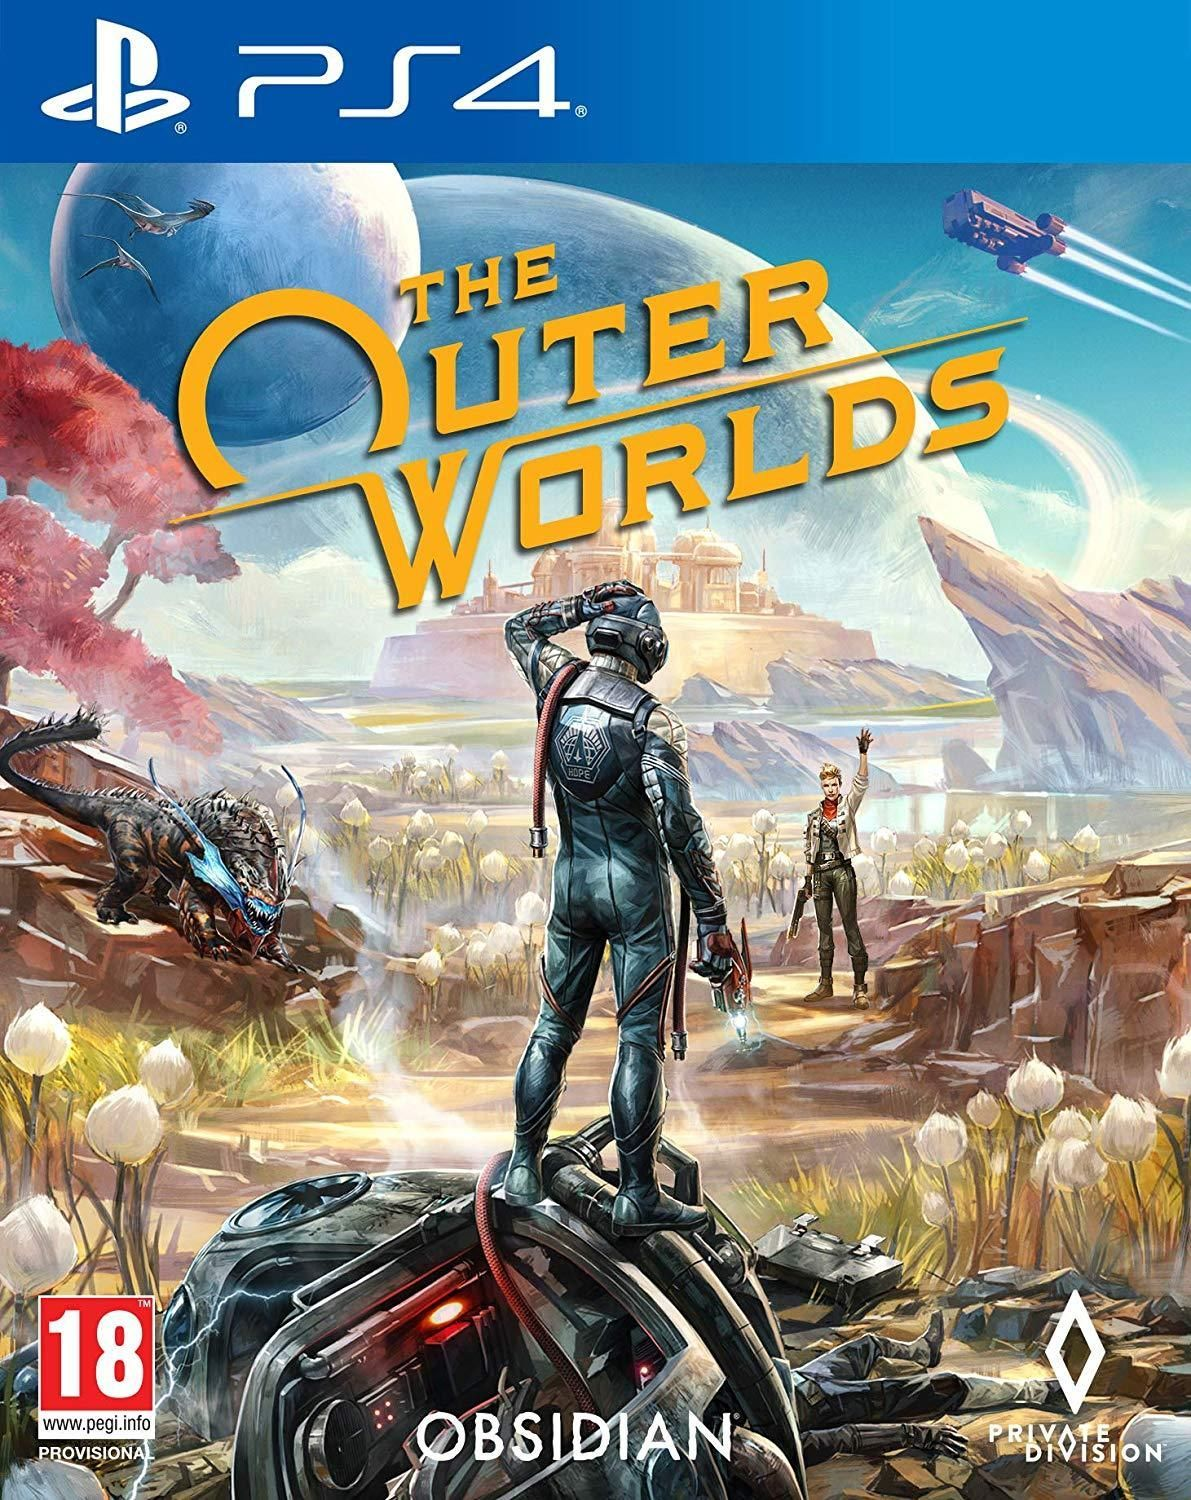 the-outer-worlds-20198181125490_1.jpg